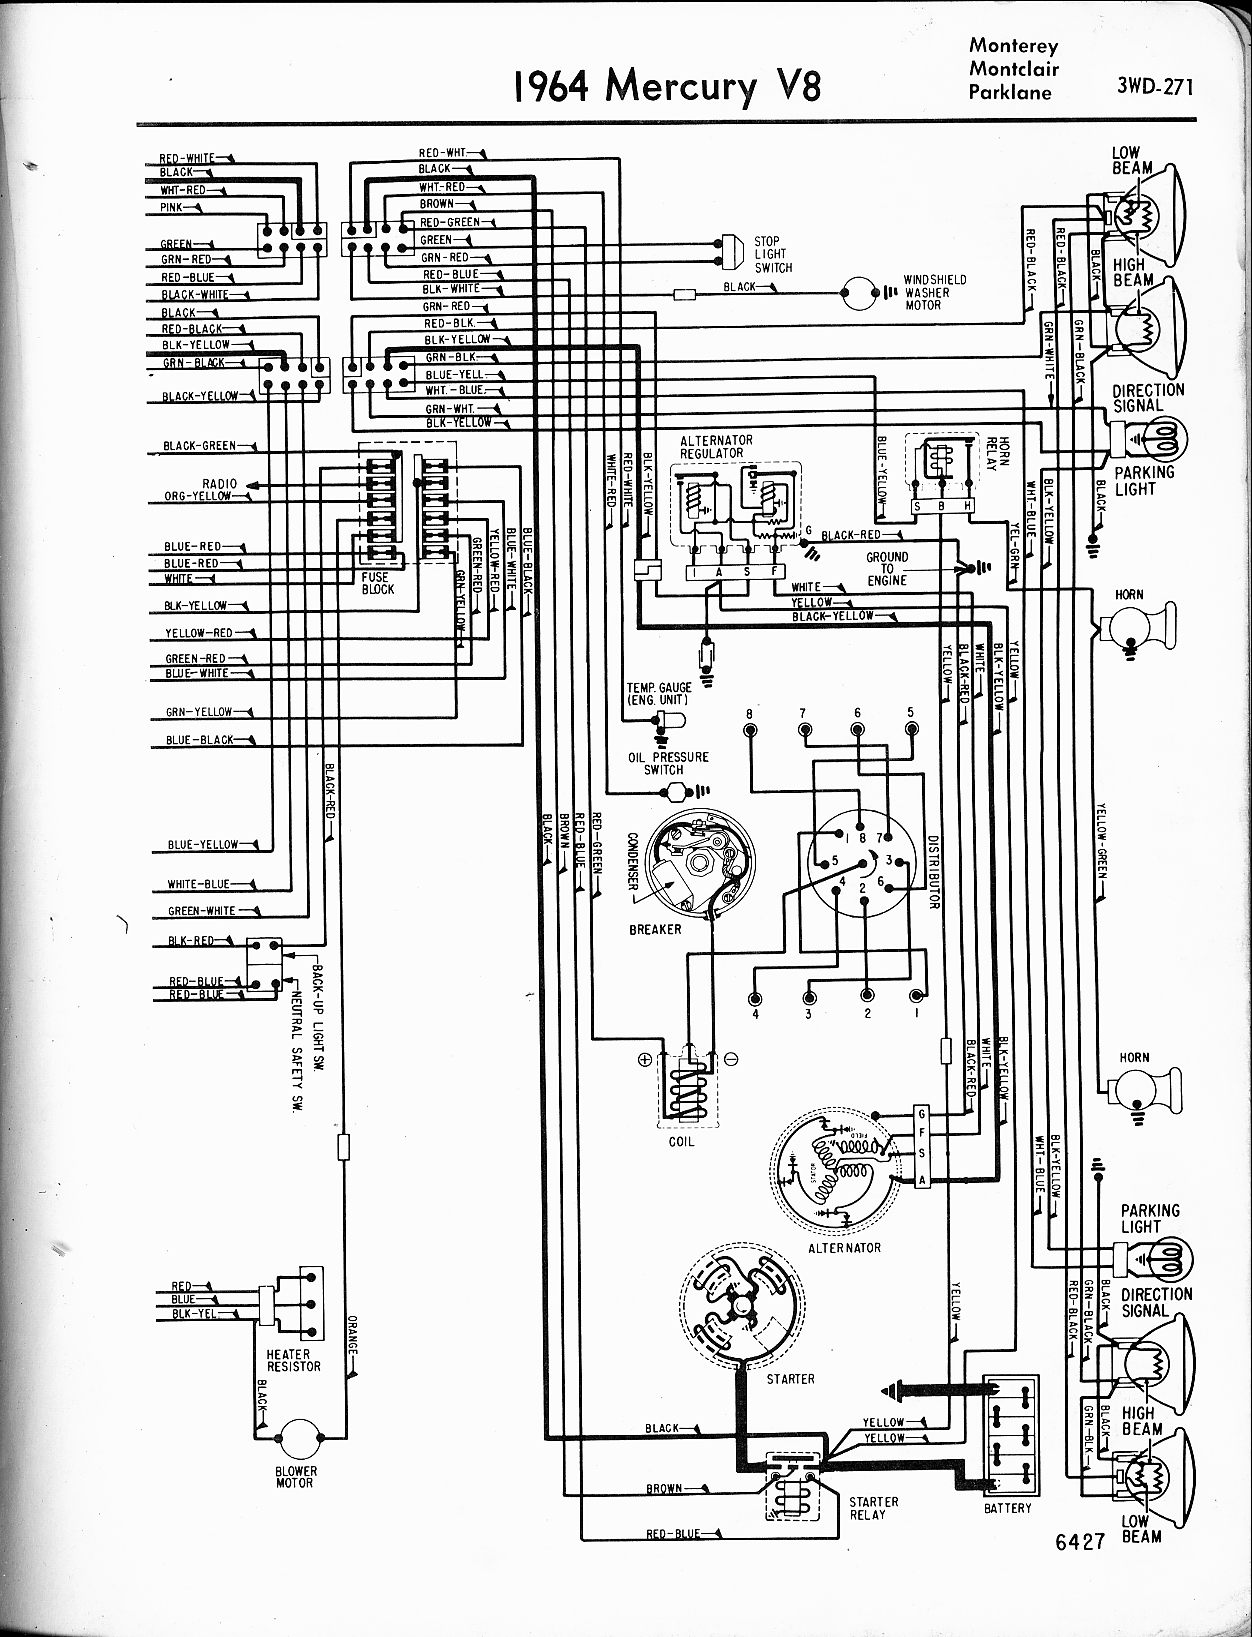 1969 Mercury Cougar Wiring Diagram Diagrams Classic Community Everything A Owner Needs Power Window Electrical Rh Cytrus Co 1967 1968 Ford Torino